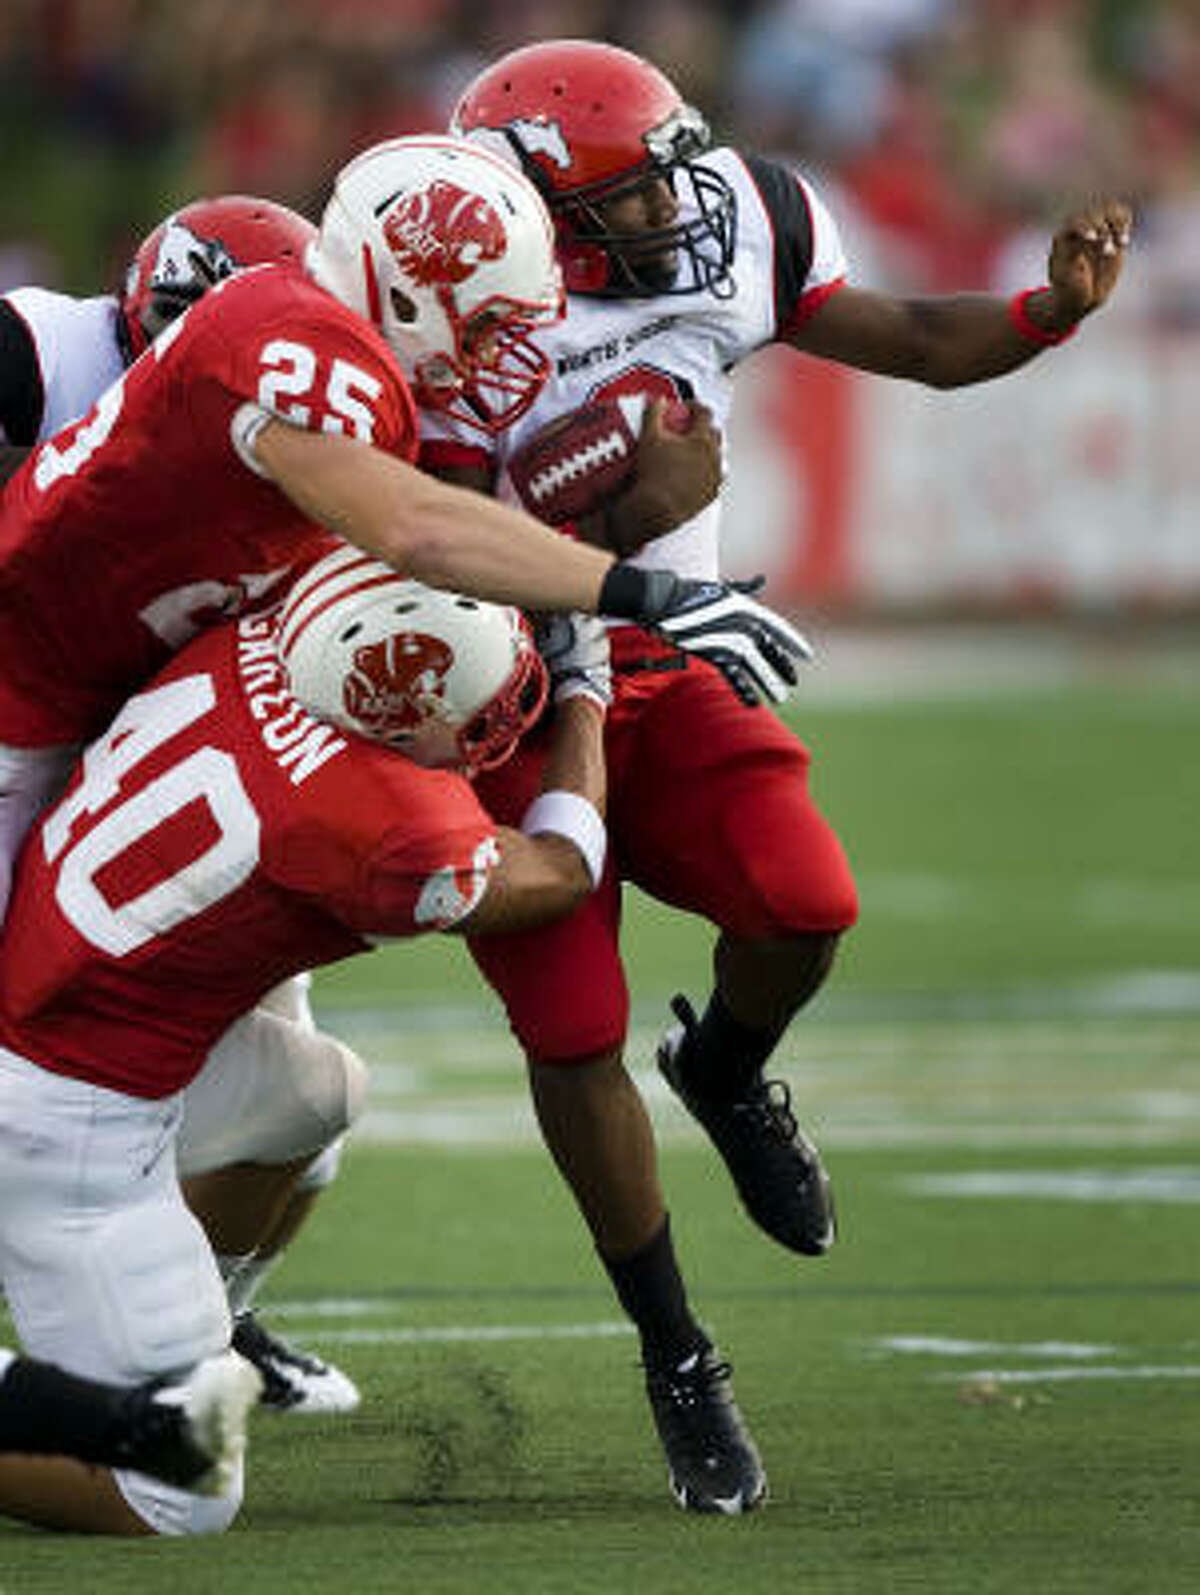 North Shore's Devon Gibson (right) is brought down by Katy's Sam Holl (25) and Andrew Garzon (40) during the first half.